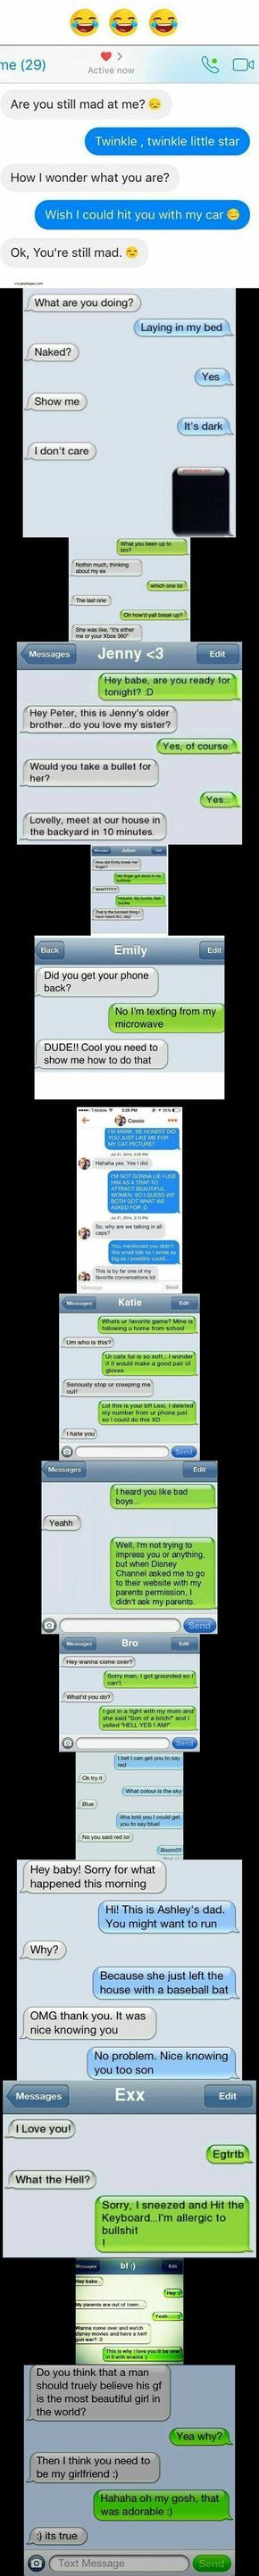 Pin by Didi Rodriguez on Ribracks board Funny texts